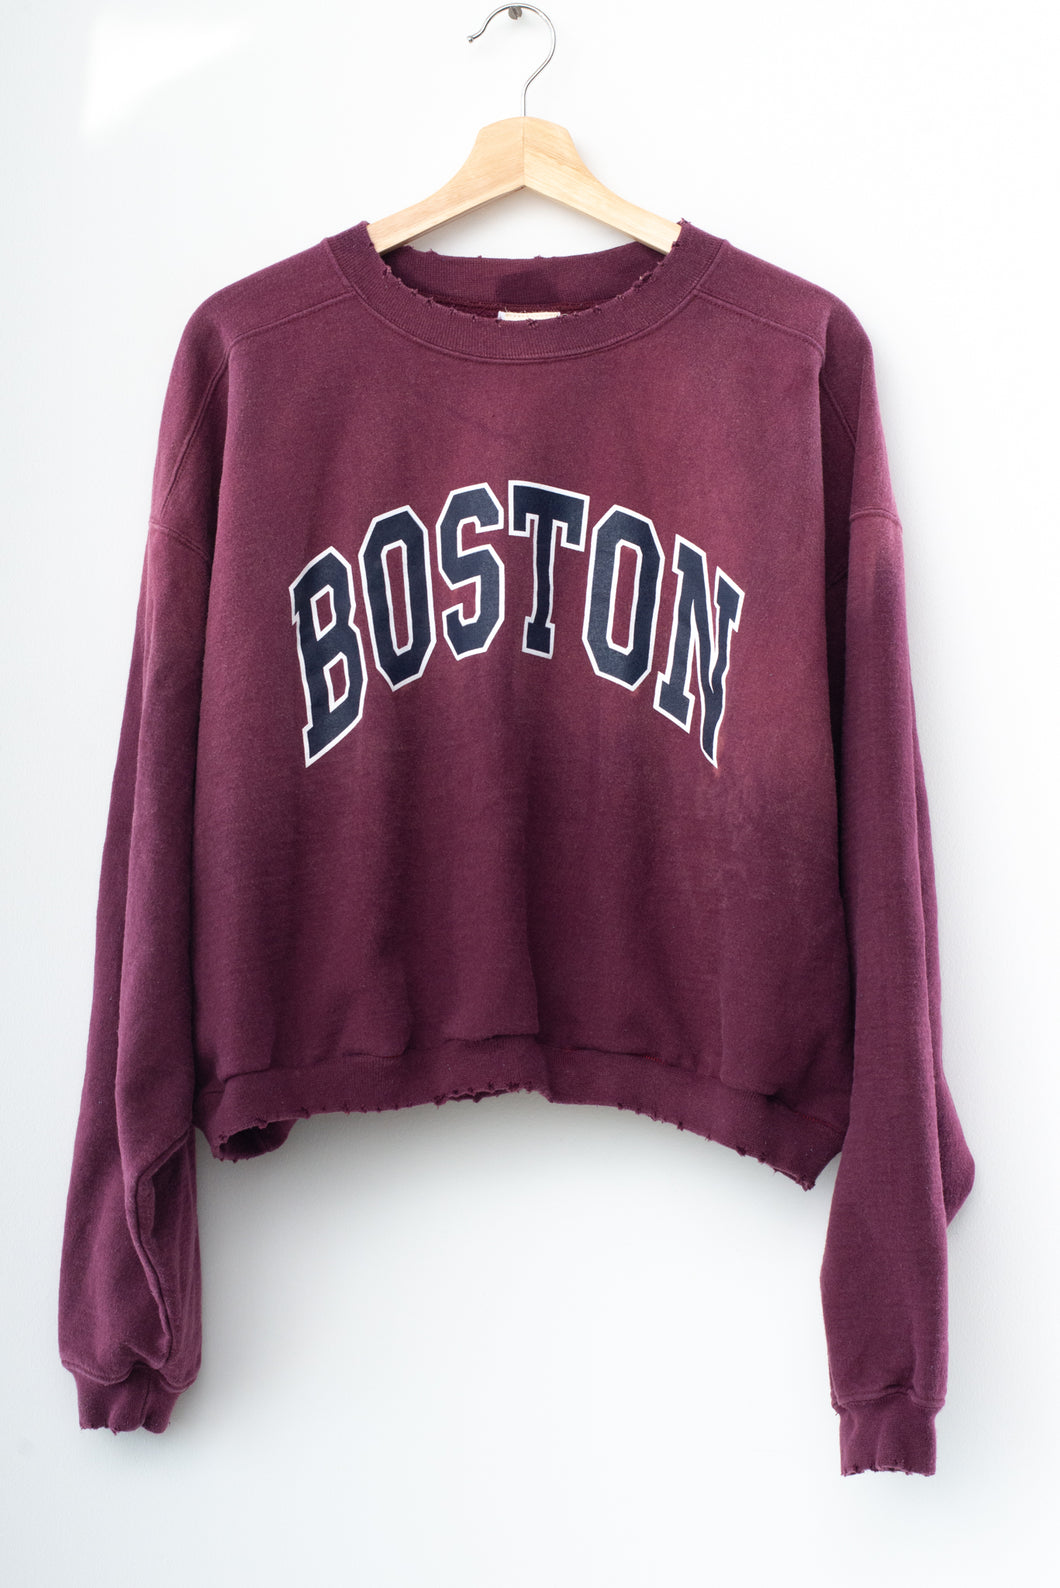 Boston Crop Sweatshirt